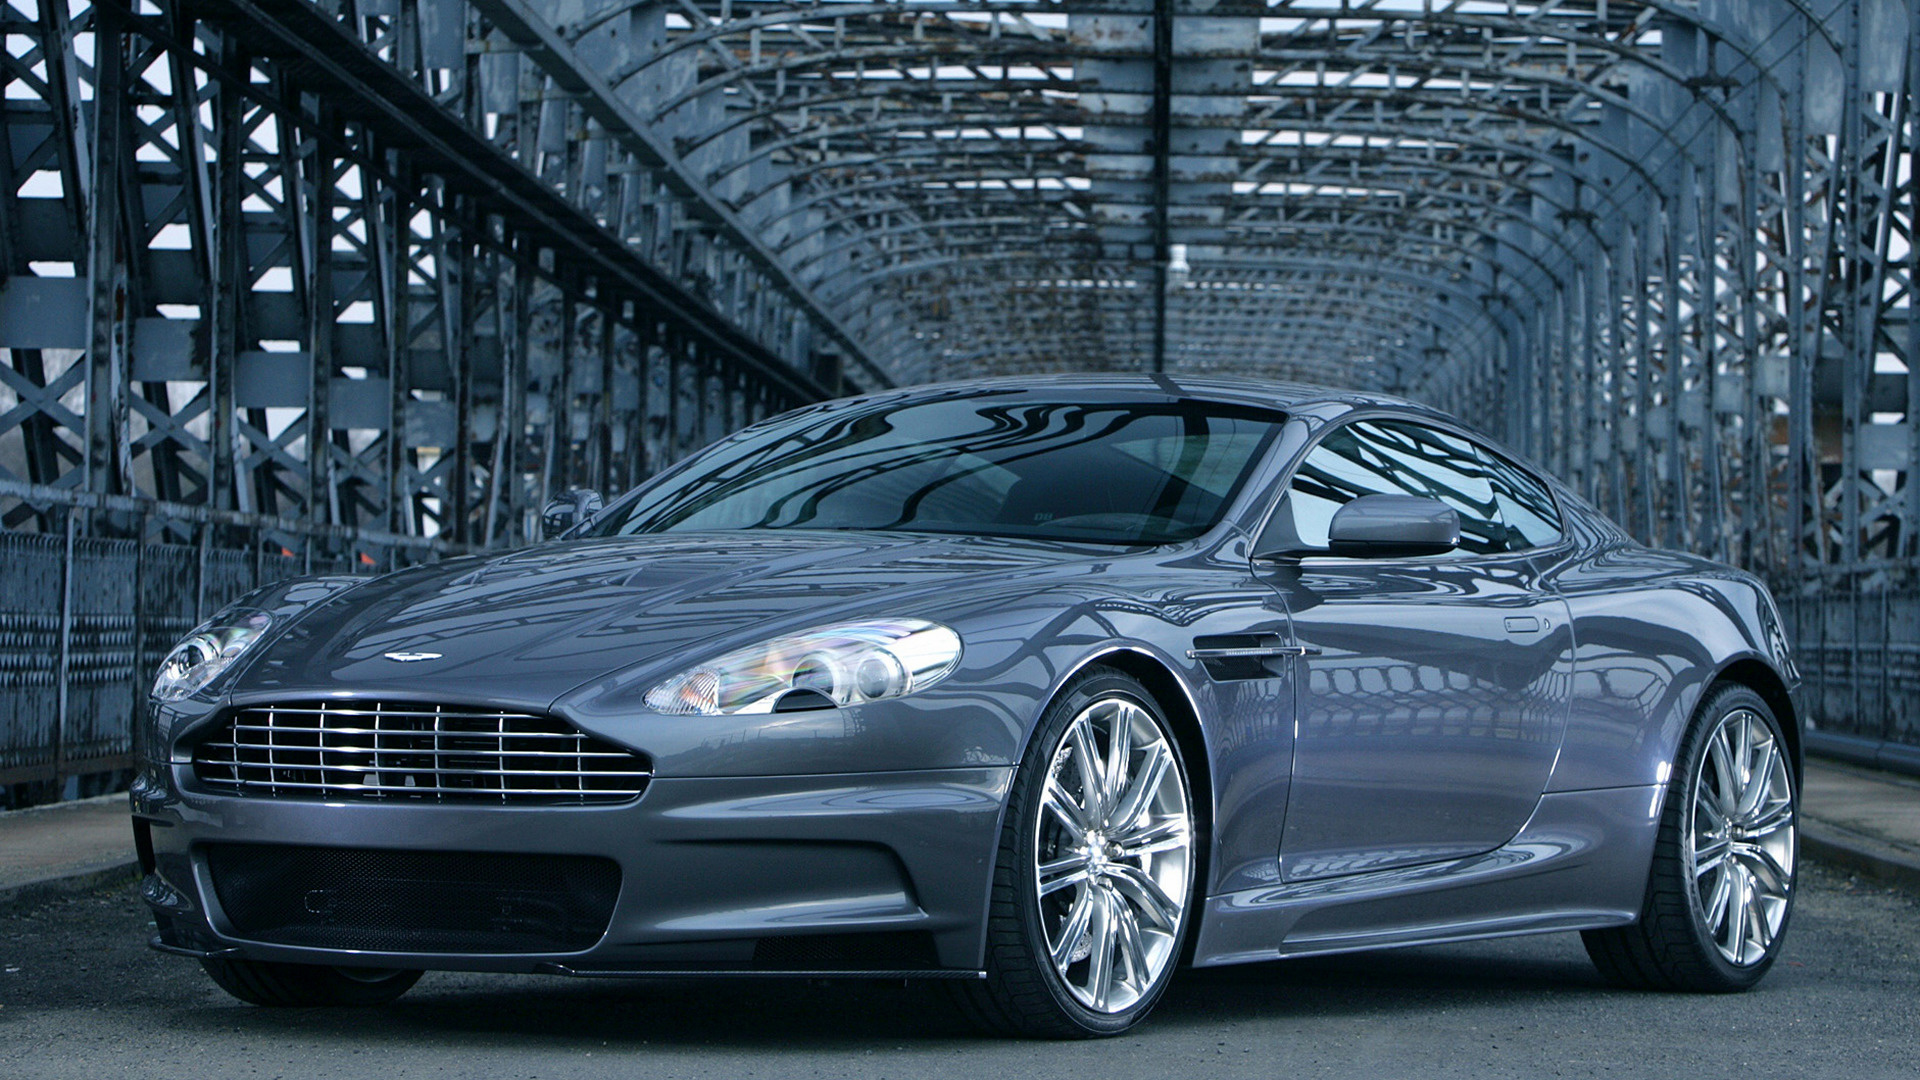 2006 Aston Martin DBS 007 Casino Royale - Wallpapers and ...